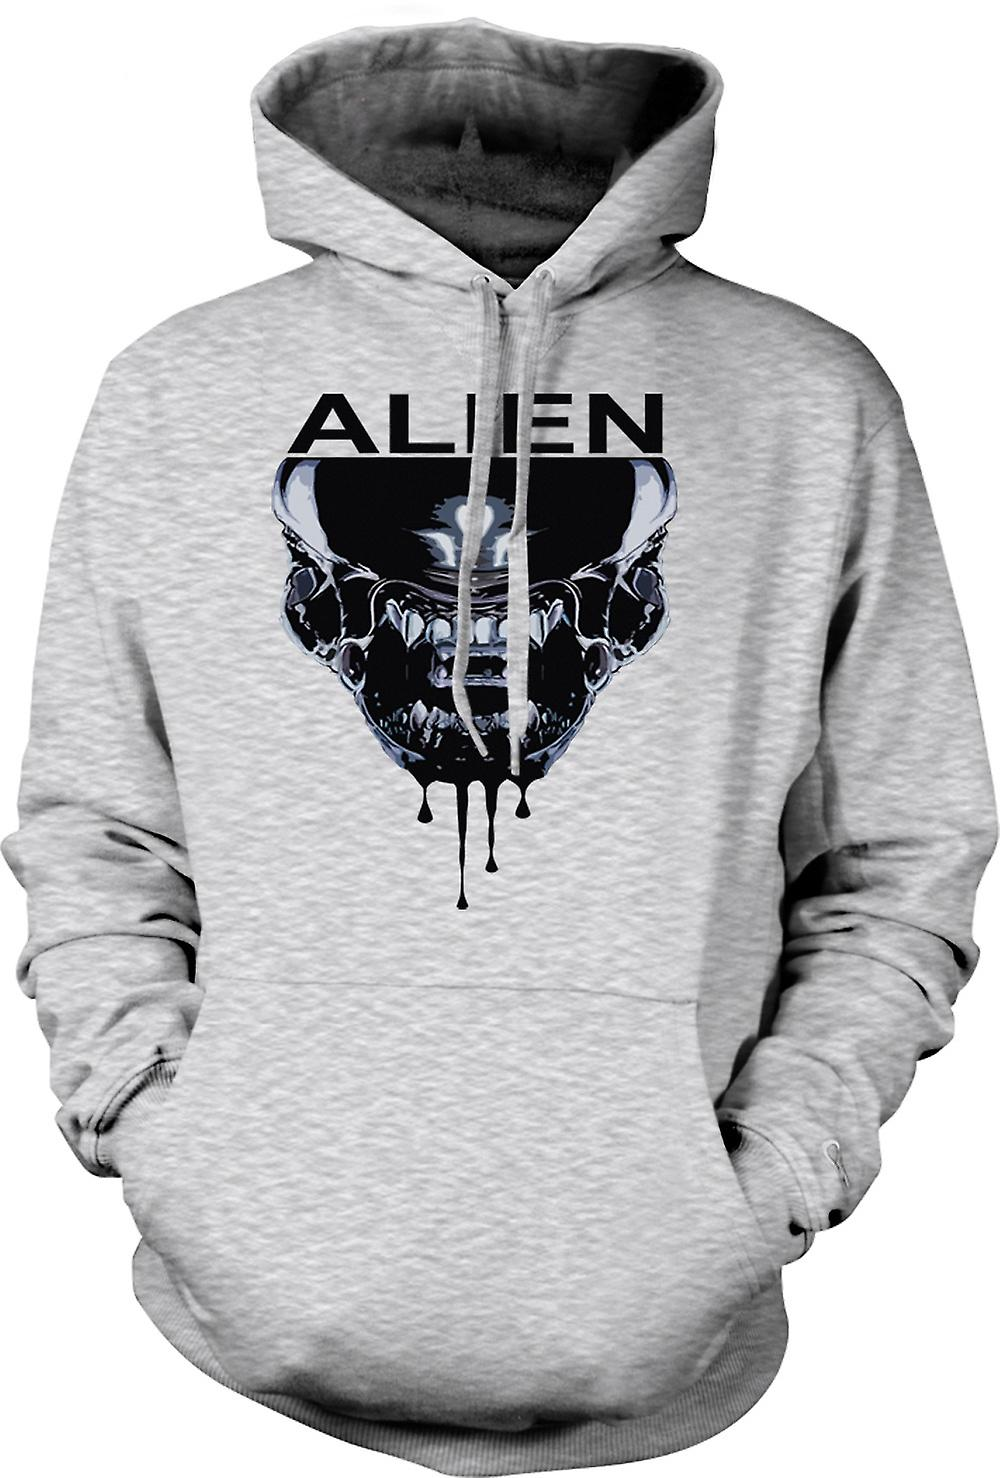 Mens hettegenser - Alien ansikt - Sci Fi - Pop Art